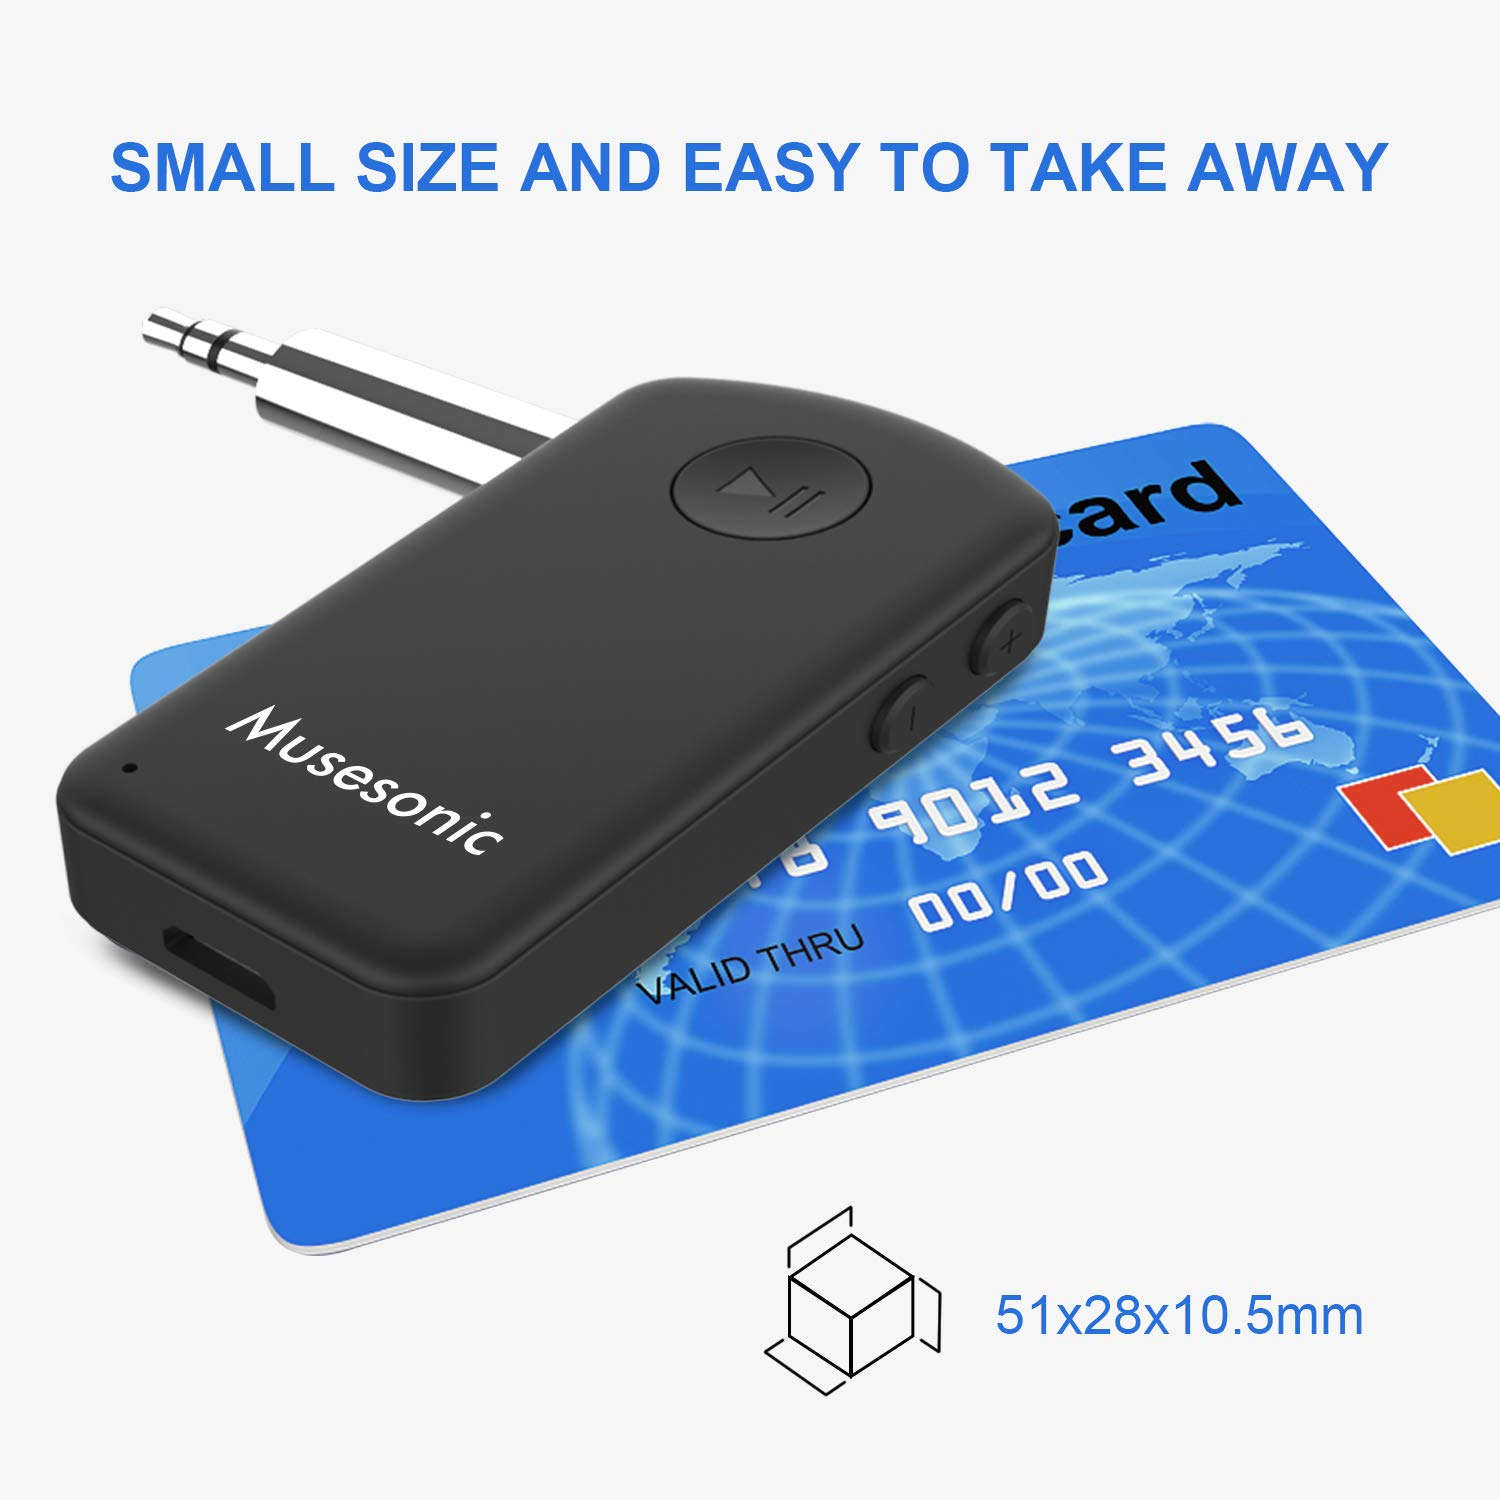 Musesonic Bluetooth V5.0 Audio Receiver Car Kit Qualcomm Chipset Wireless Adapter with Mic 3.5mm Aux Stereo Output for Music System (Black)